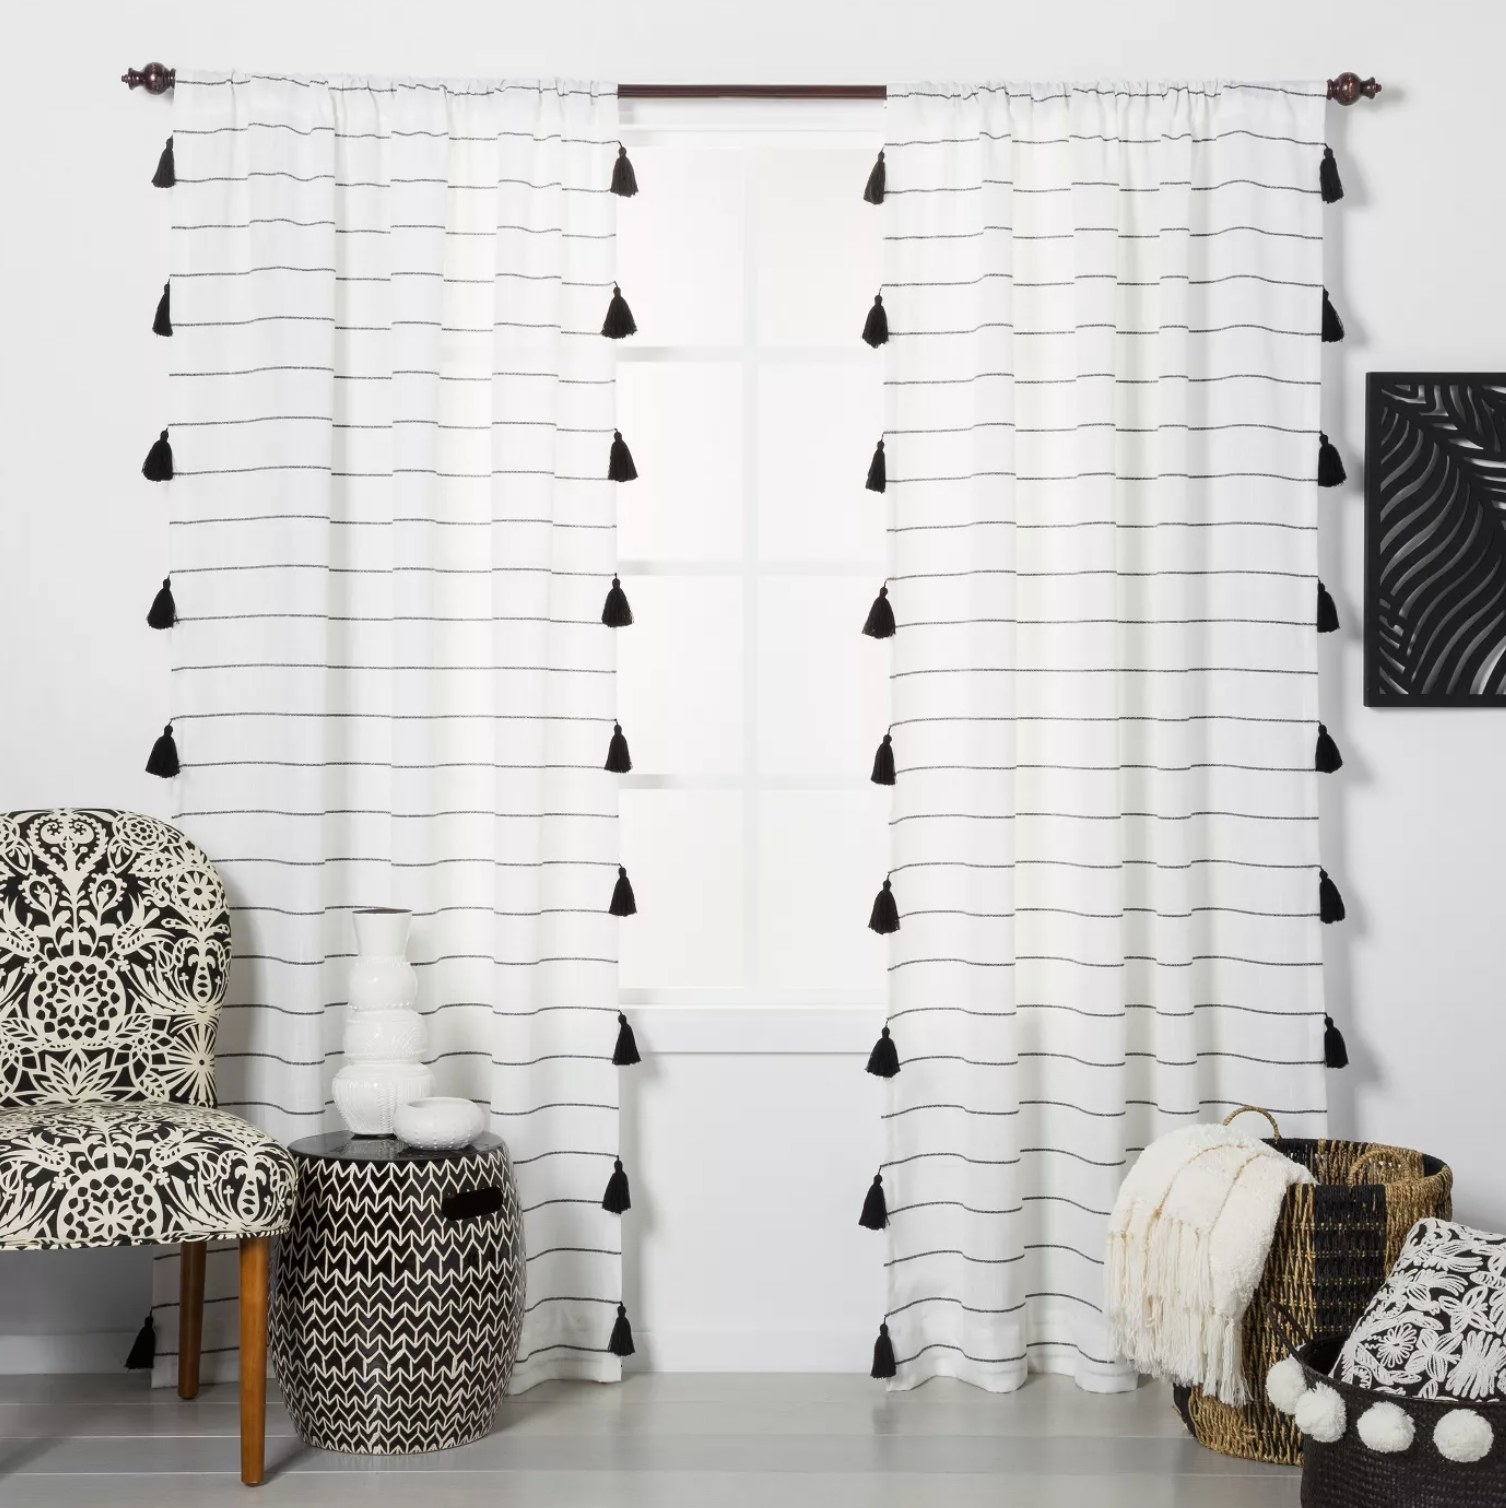 The black and white striped curtains with black tassels hanging on a black rod